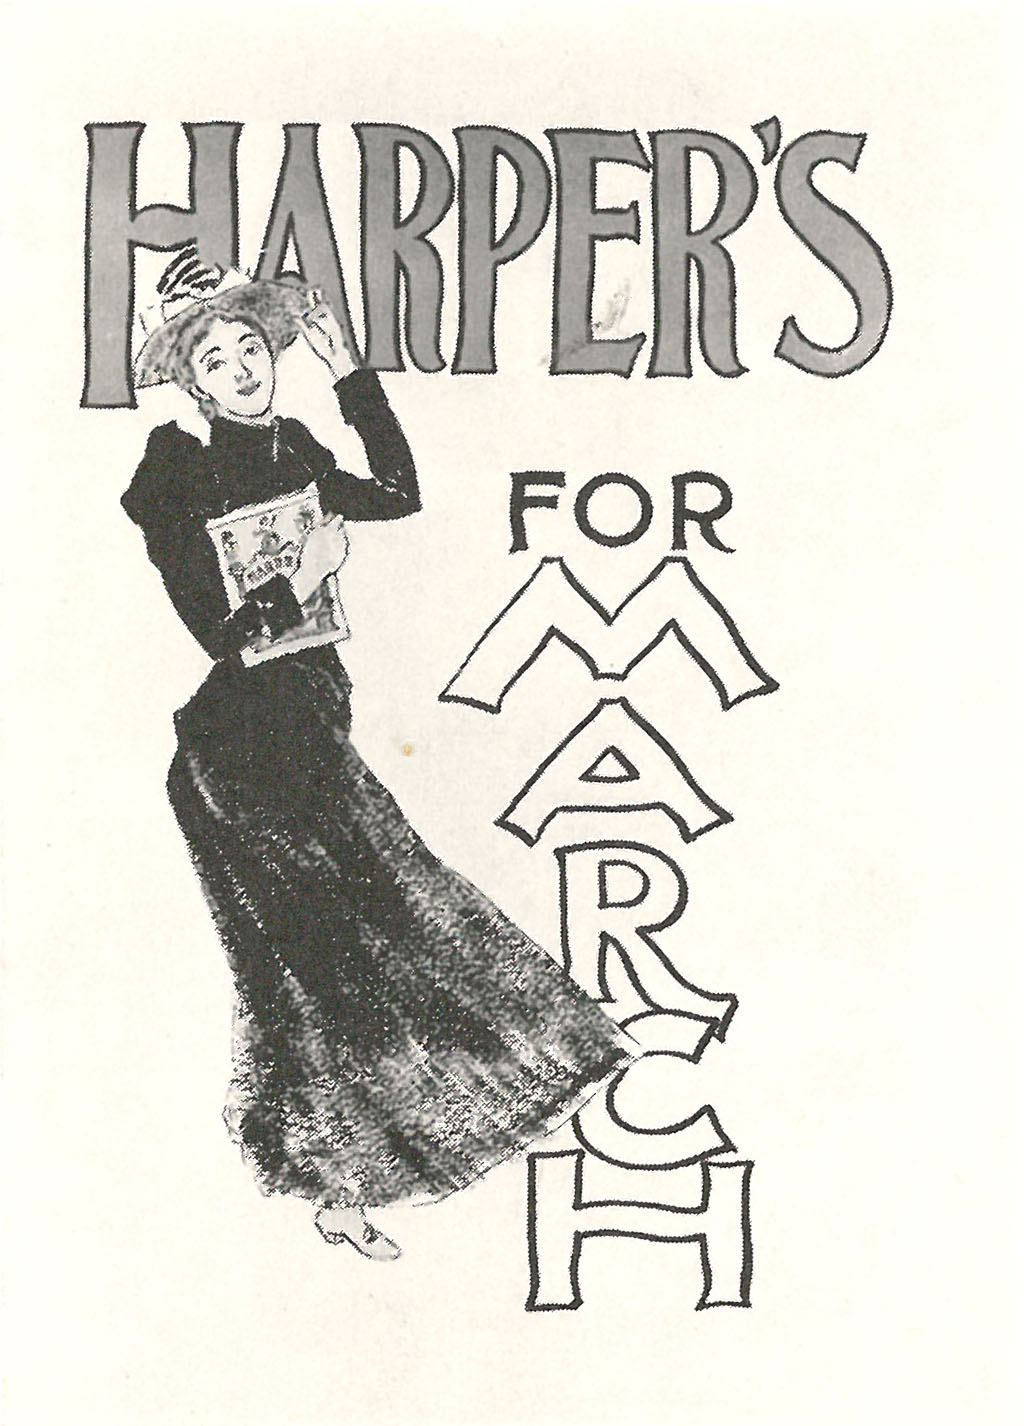 poster by edward penfield for harpers new monthly magazine march 1893